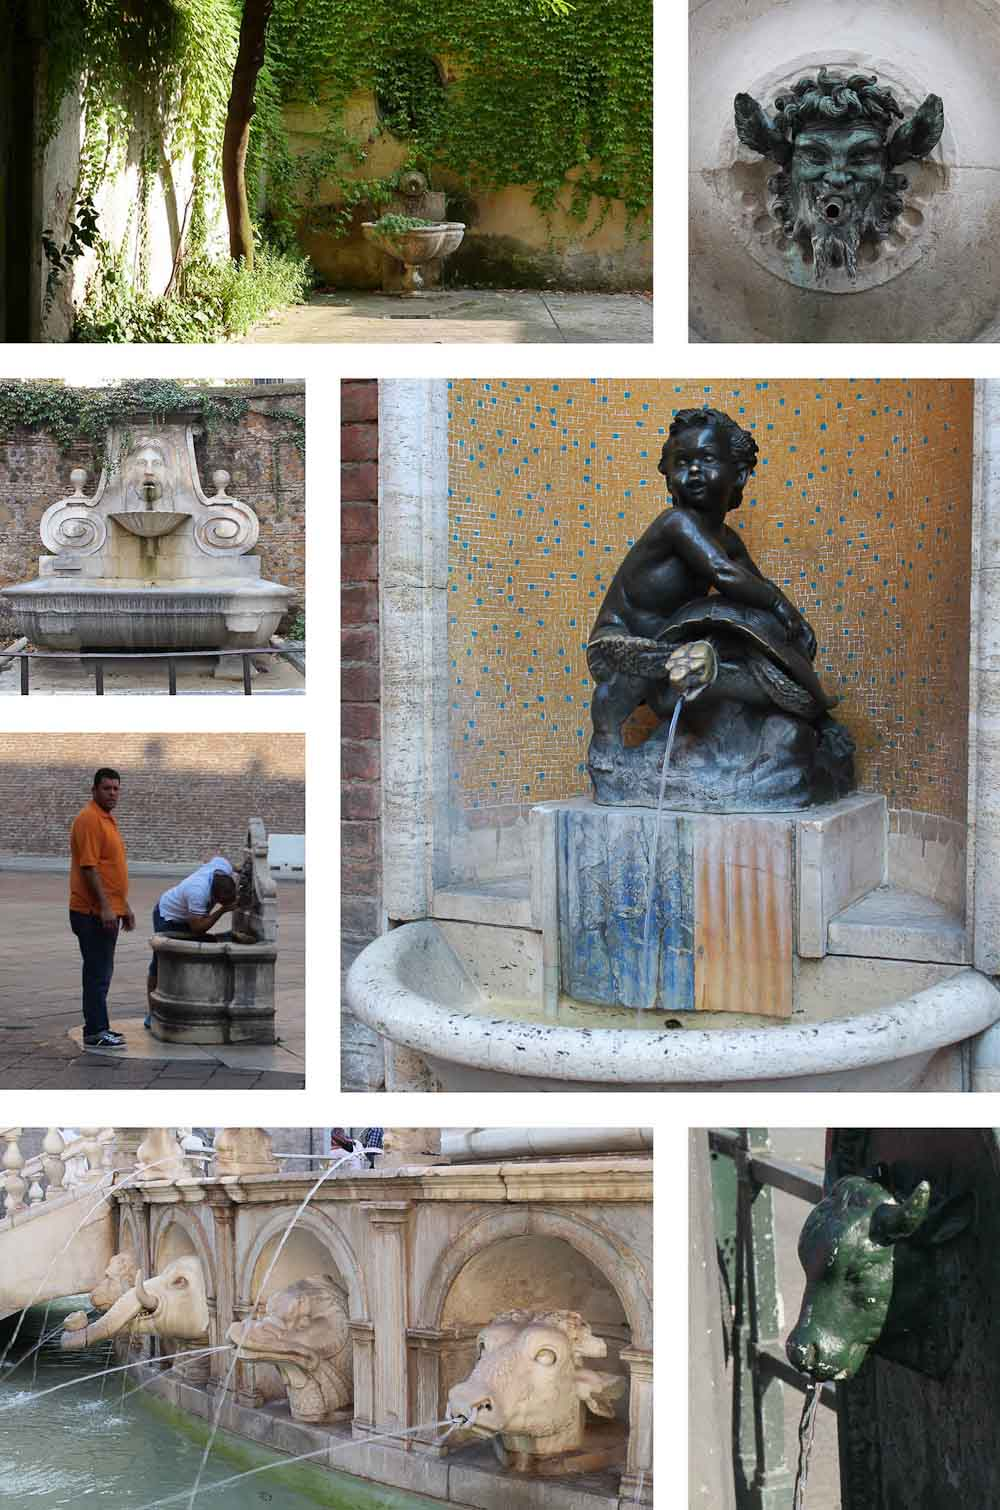 Water fountains - Drinking water in Italy - Italian Notes